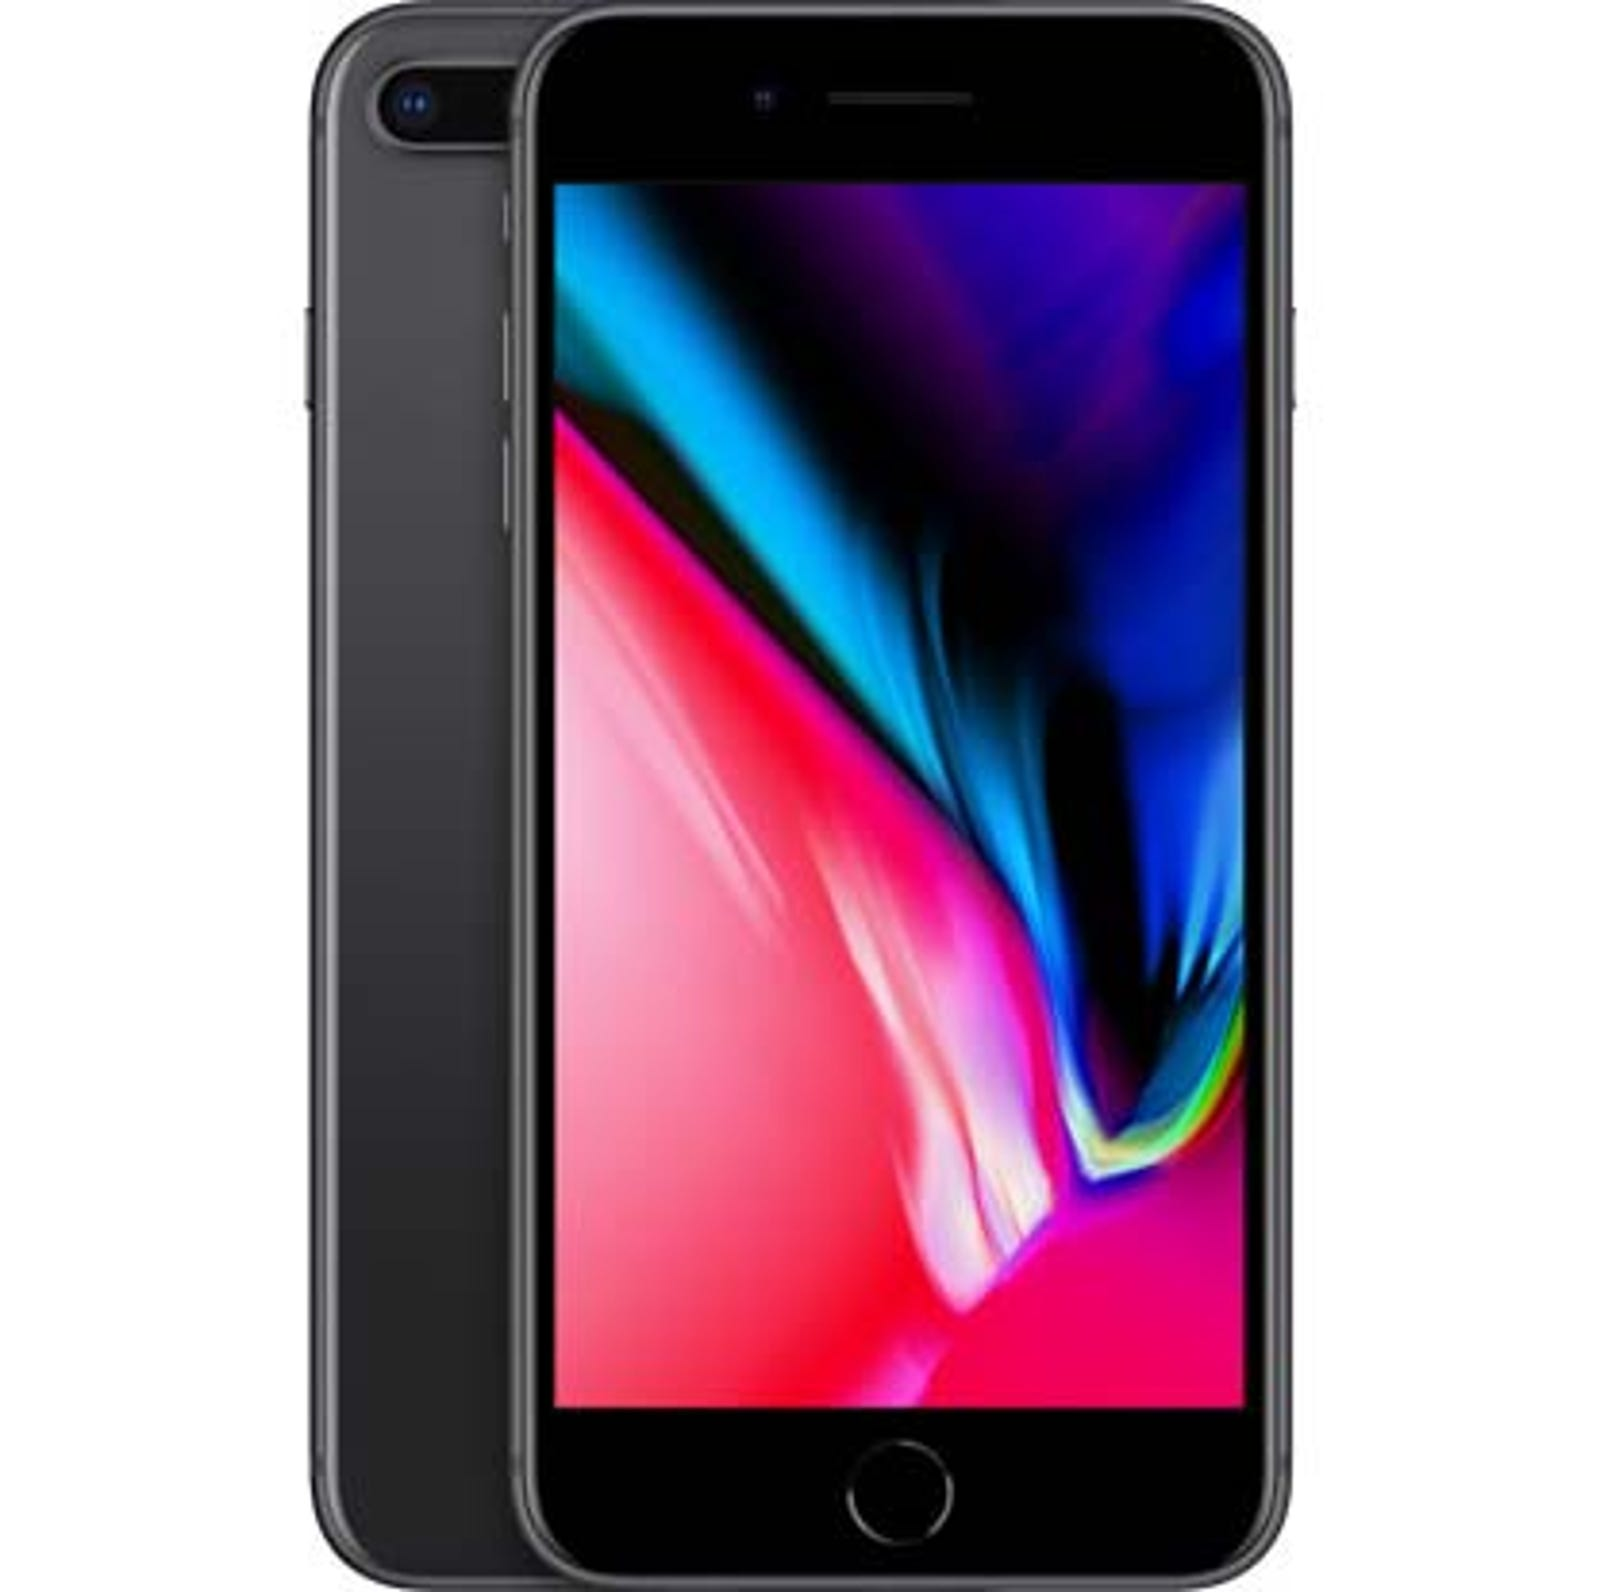 73632f751d2 iPhone: Shop For Latest Apple iPhone Mobile Devices | Best Buy Canada